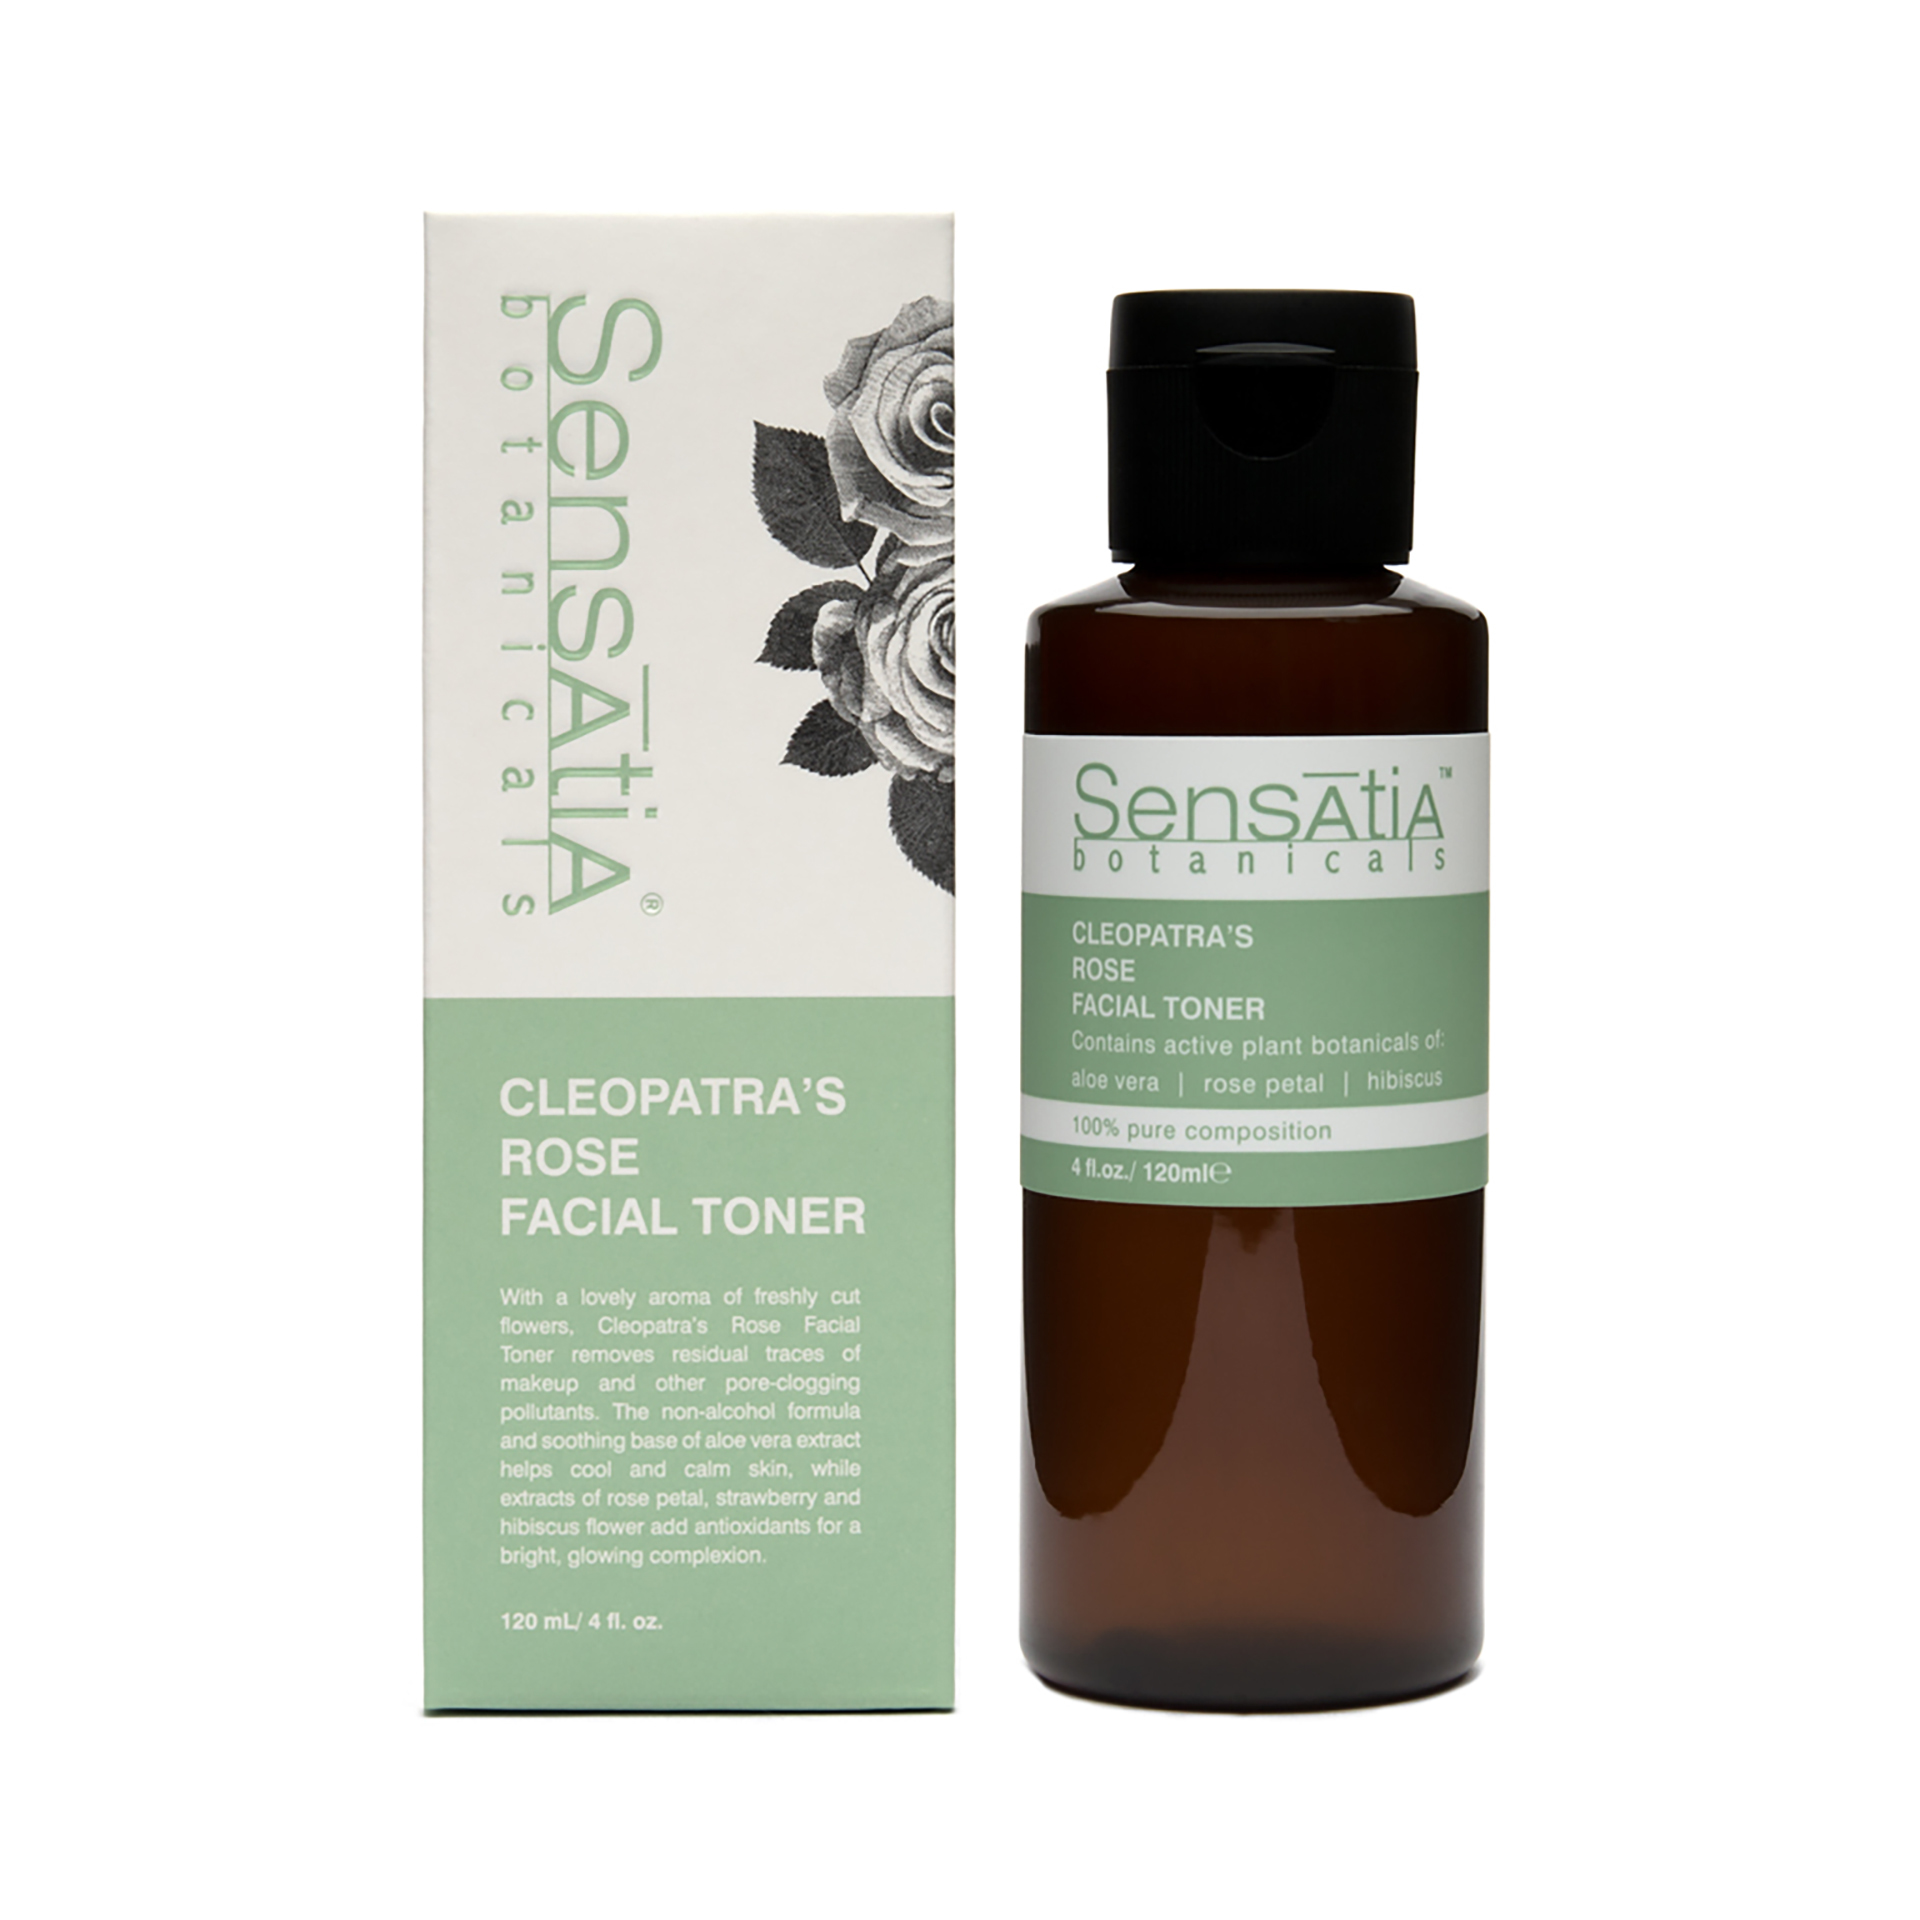 Cleopatra's Rose Facial Toner Together.jpg